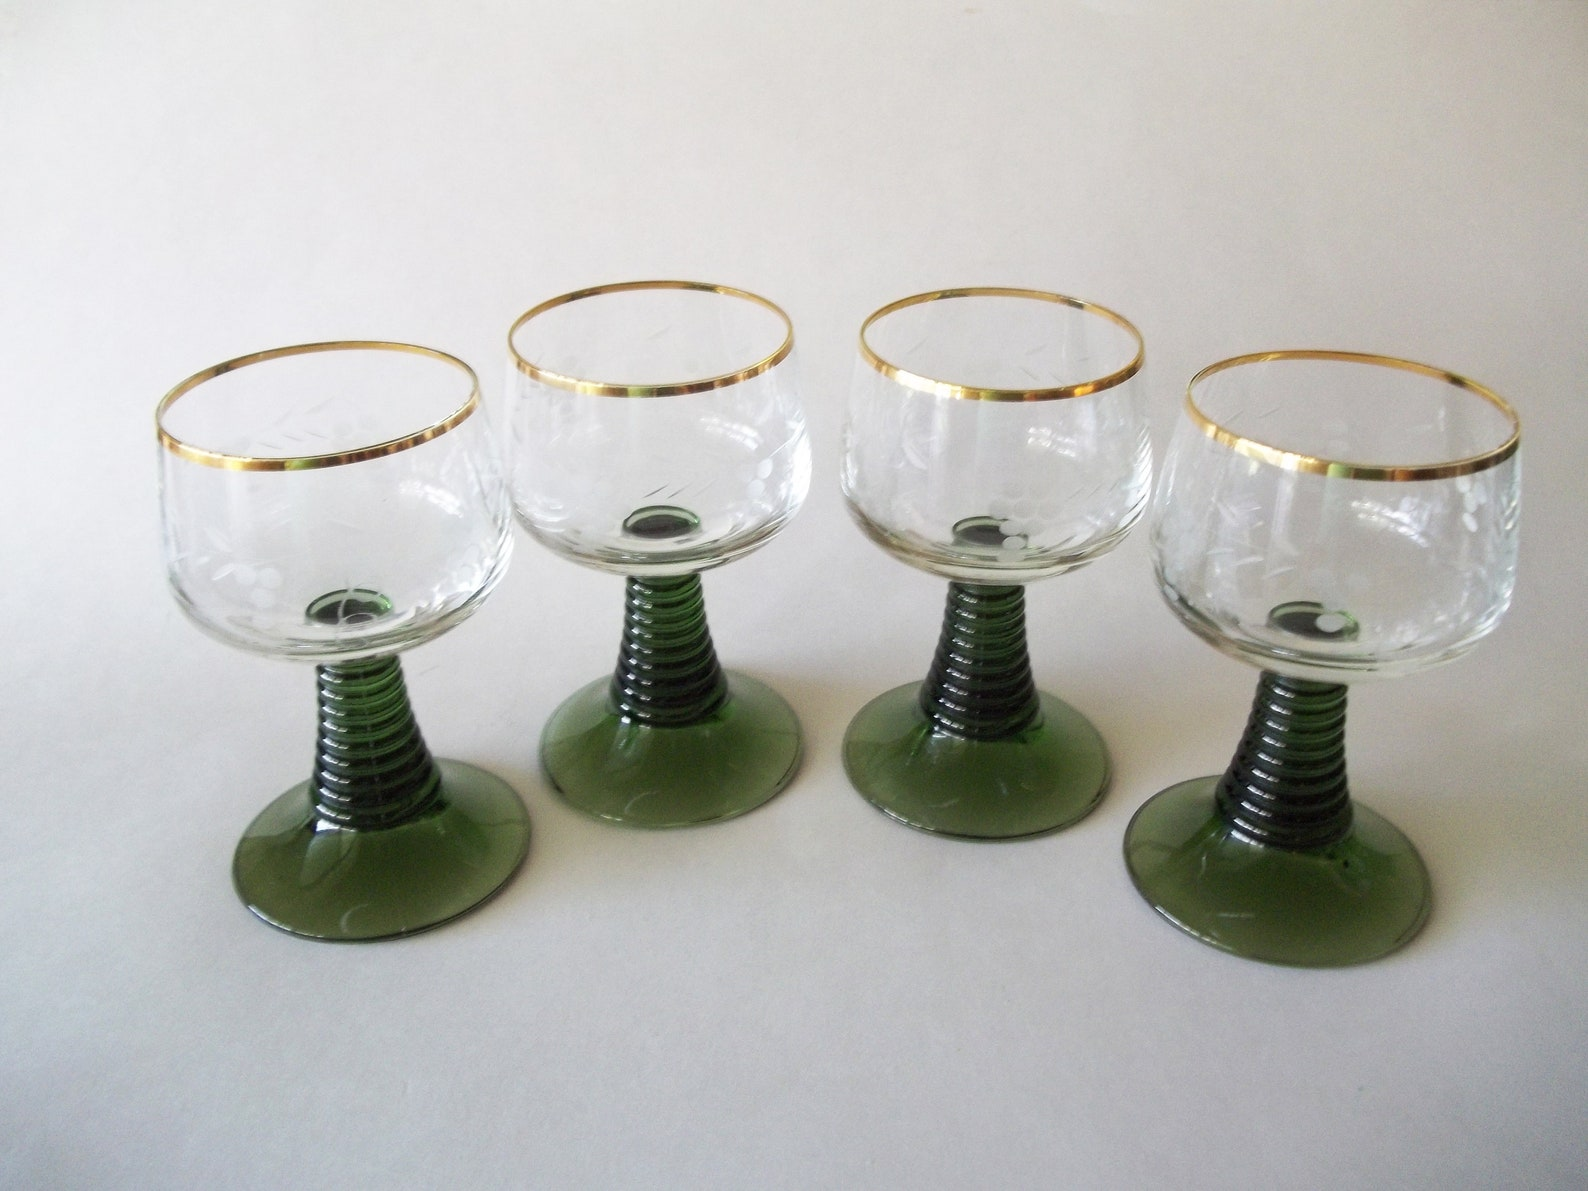 Crystal Roemer Water / Wine Glasses, Green Beehive Stem, Clear Etched Grapes & Gold Trim Bowl, Vintage Glassware, Set of 4